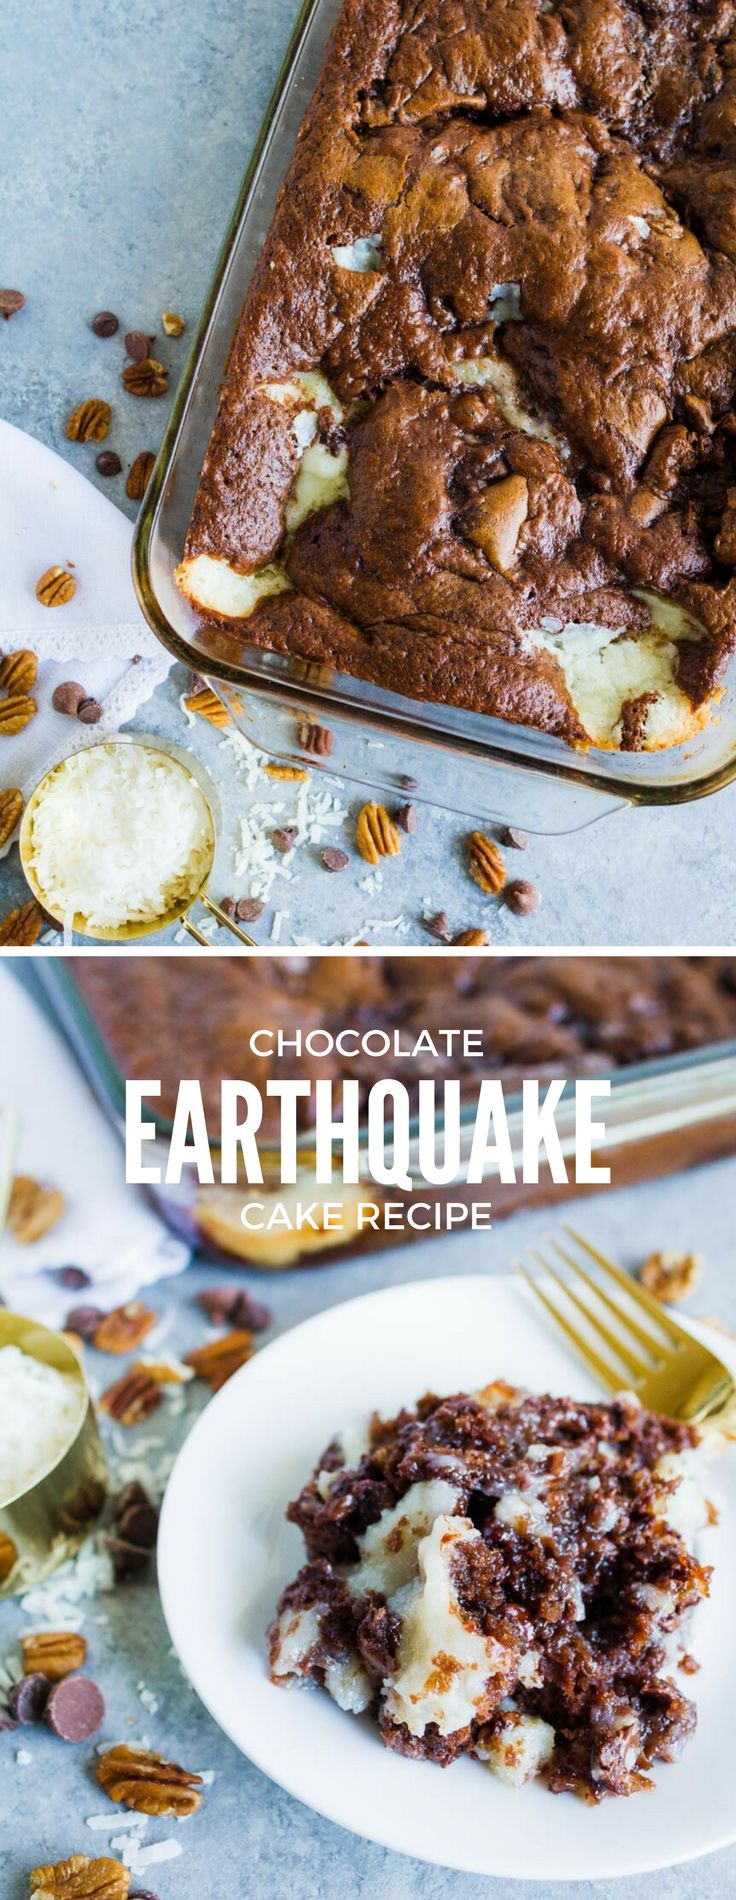 This Earthquake Cake is rich and decadent. The perfect cake recipe. Named the Earthquake Cake because the ingredients shift around when baking.